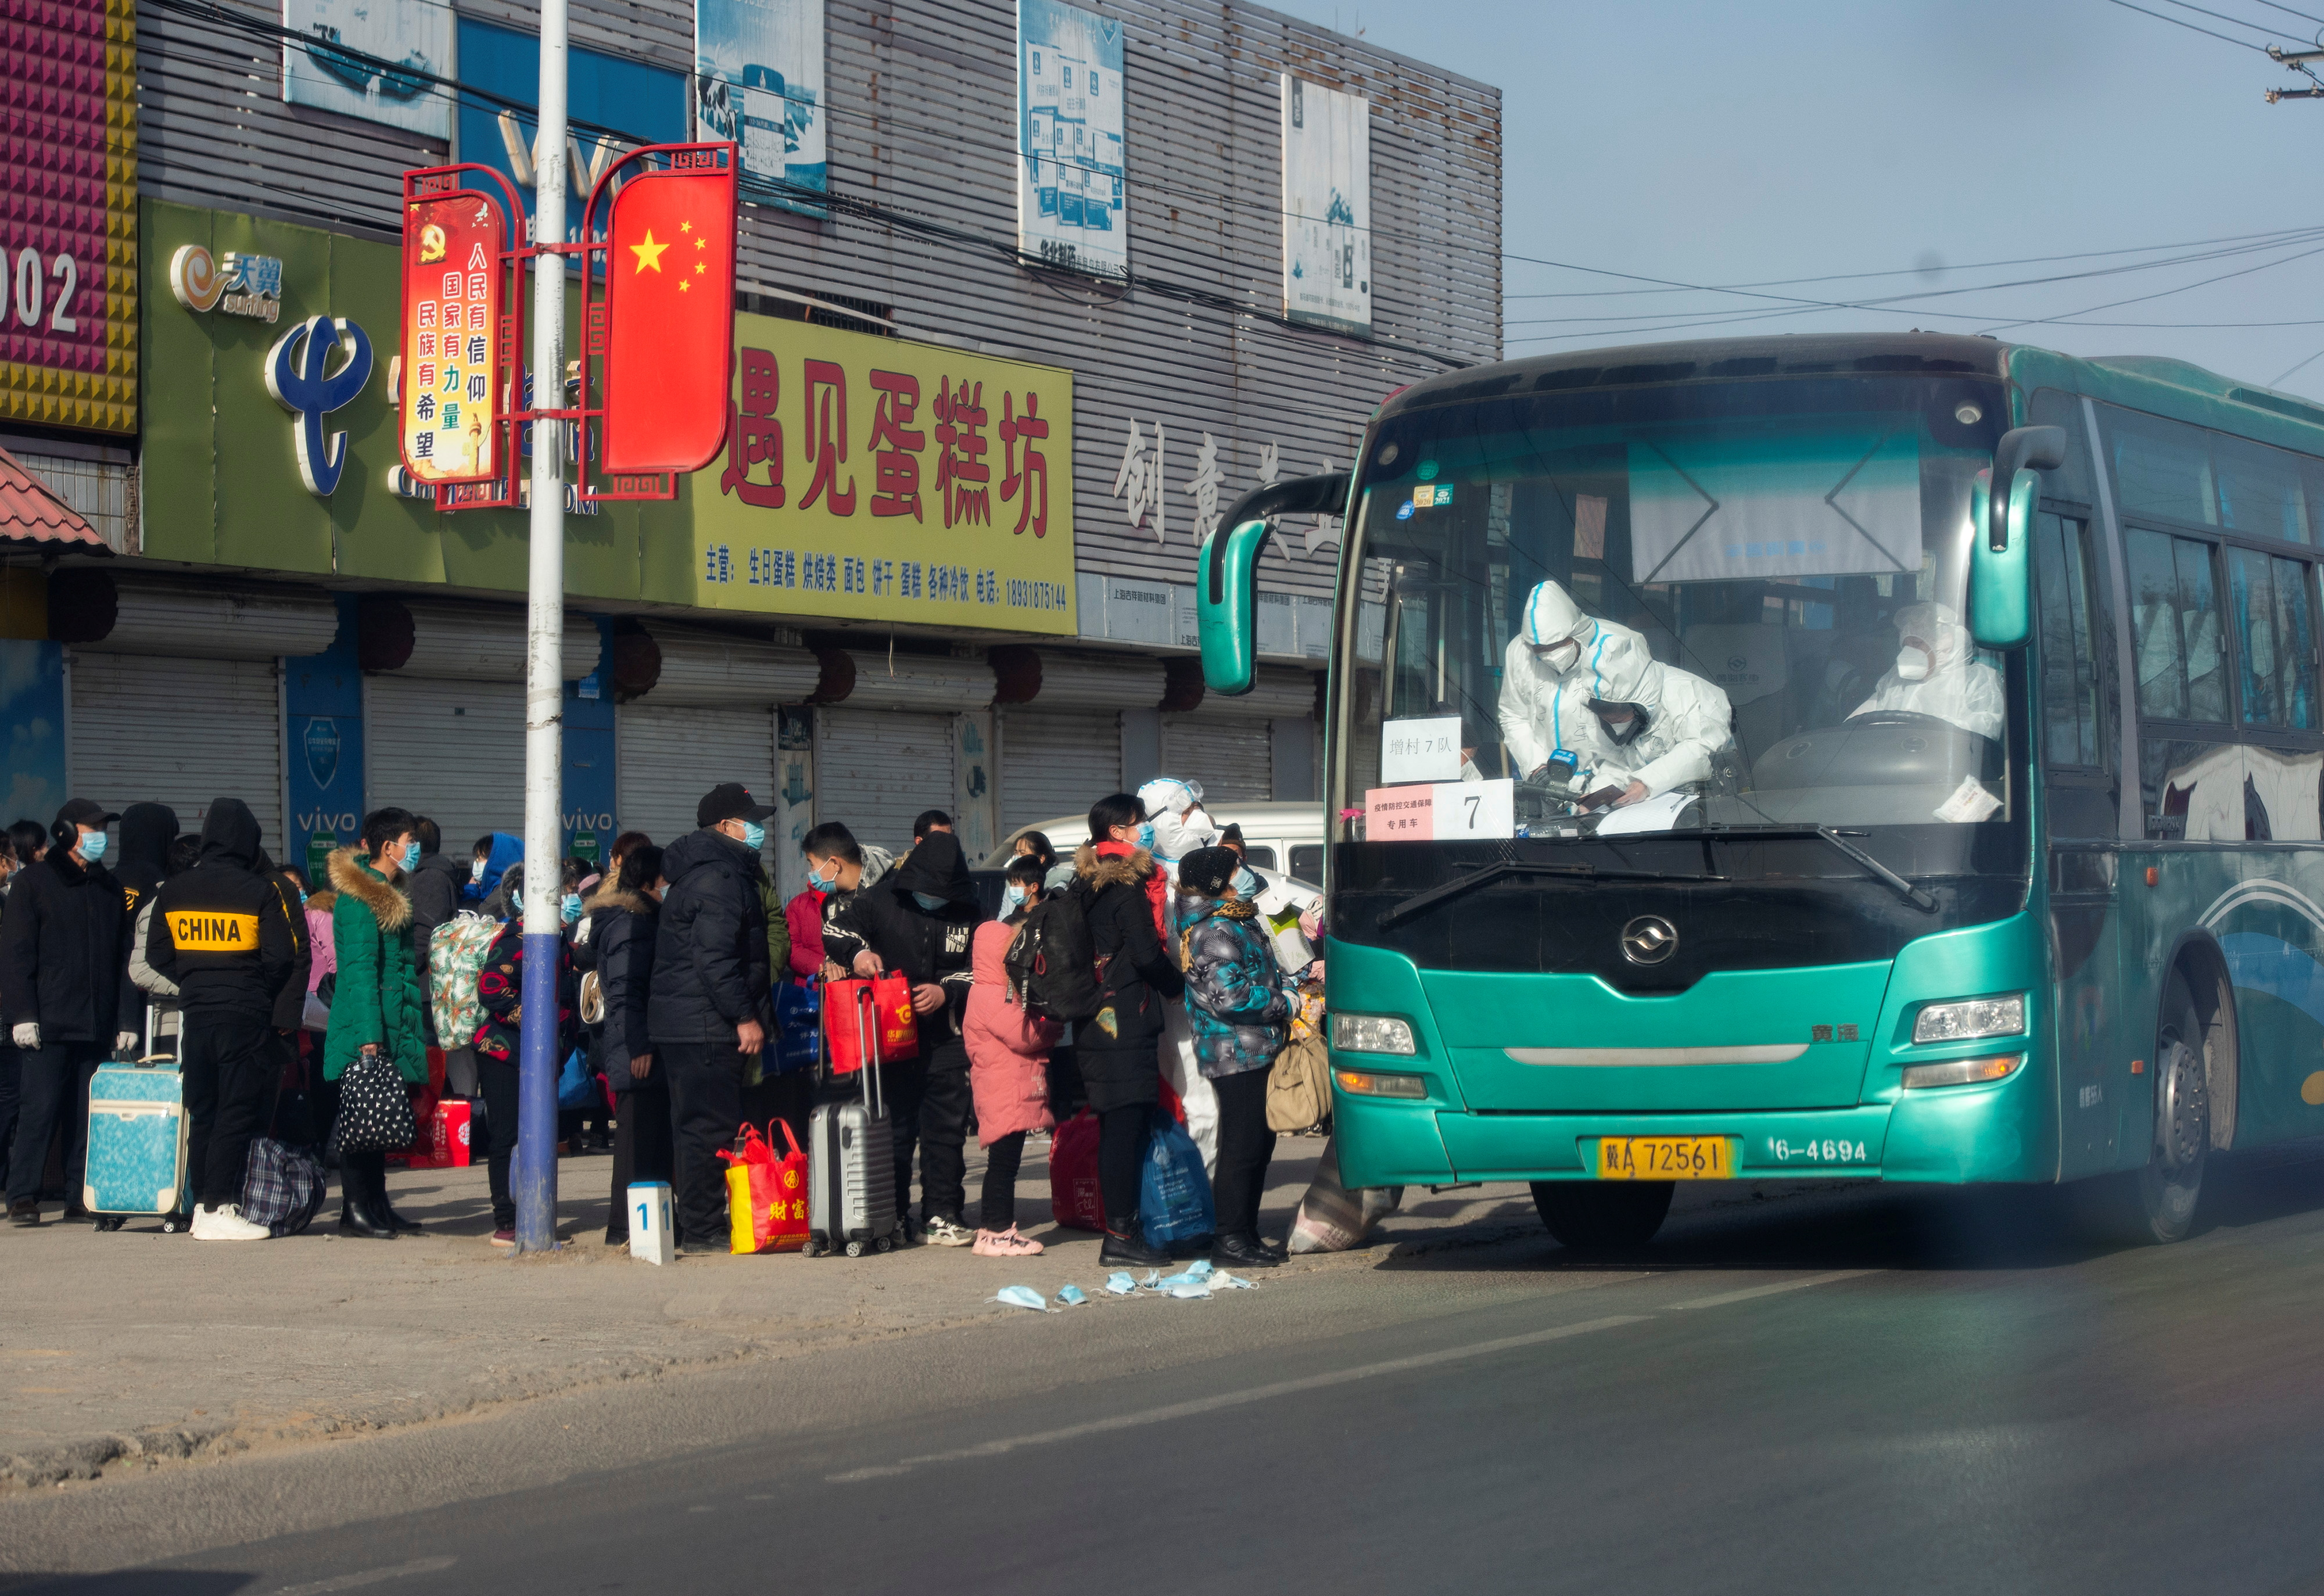 People who are required to undergo centralized quarantine line up to board a bus at a village in Gaocheng district, following a recent outbreak of the coronavirus disease (COVID-19) in Shijiazhuang, Hebei province, China January 11, 2021. cnsphoto via REUTERS   ATTENTION EDITORS - THIS IMAGE WAS PROVIDED BY A THIRD PARTY. CHINA OUT.